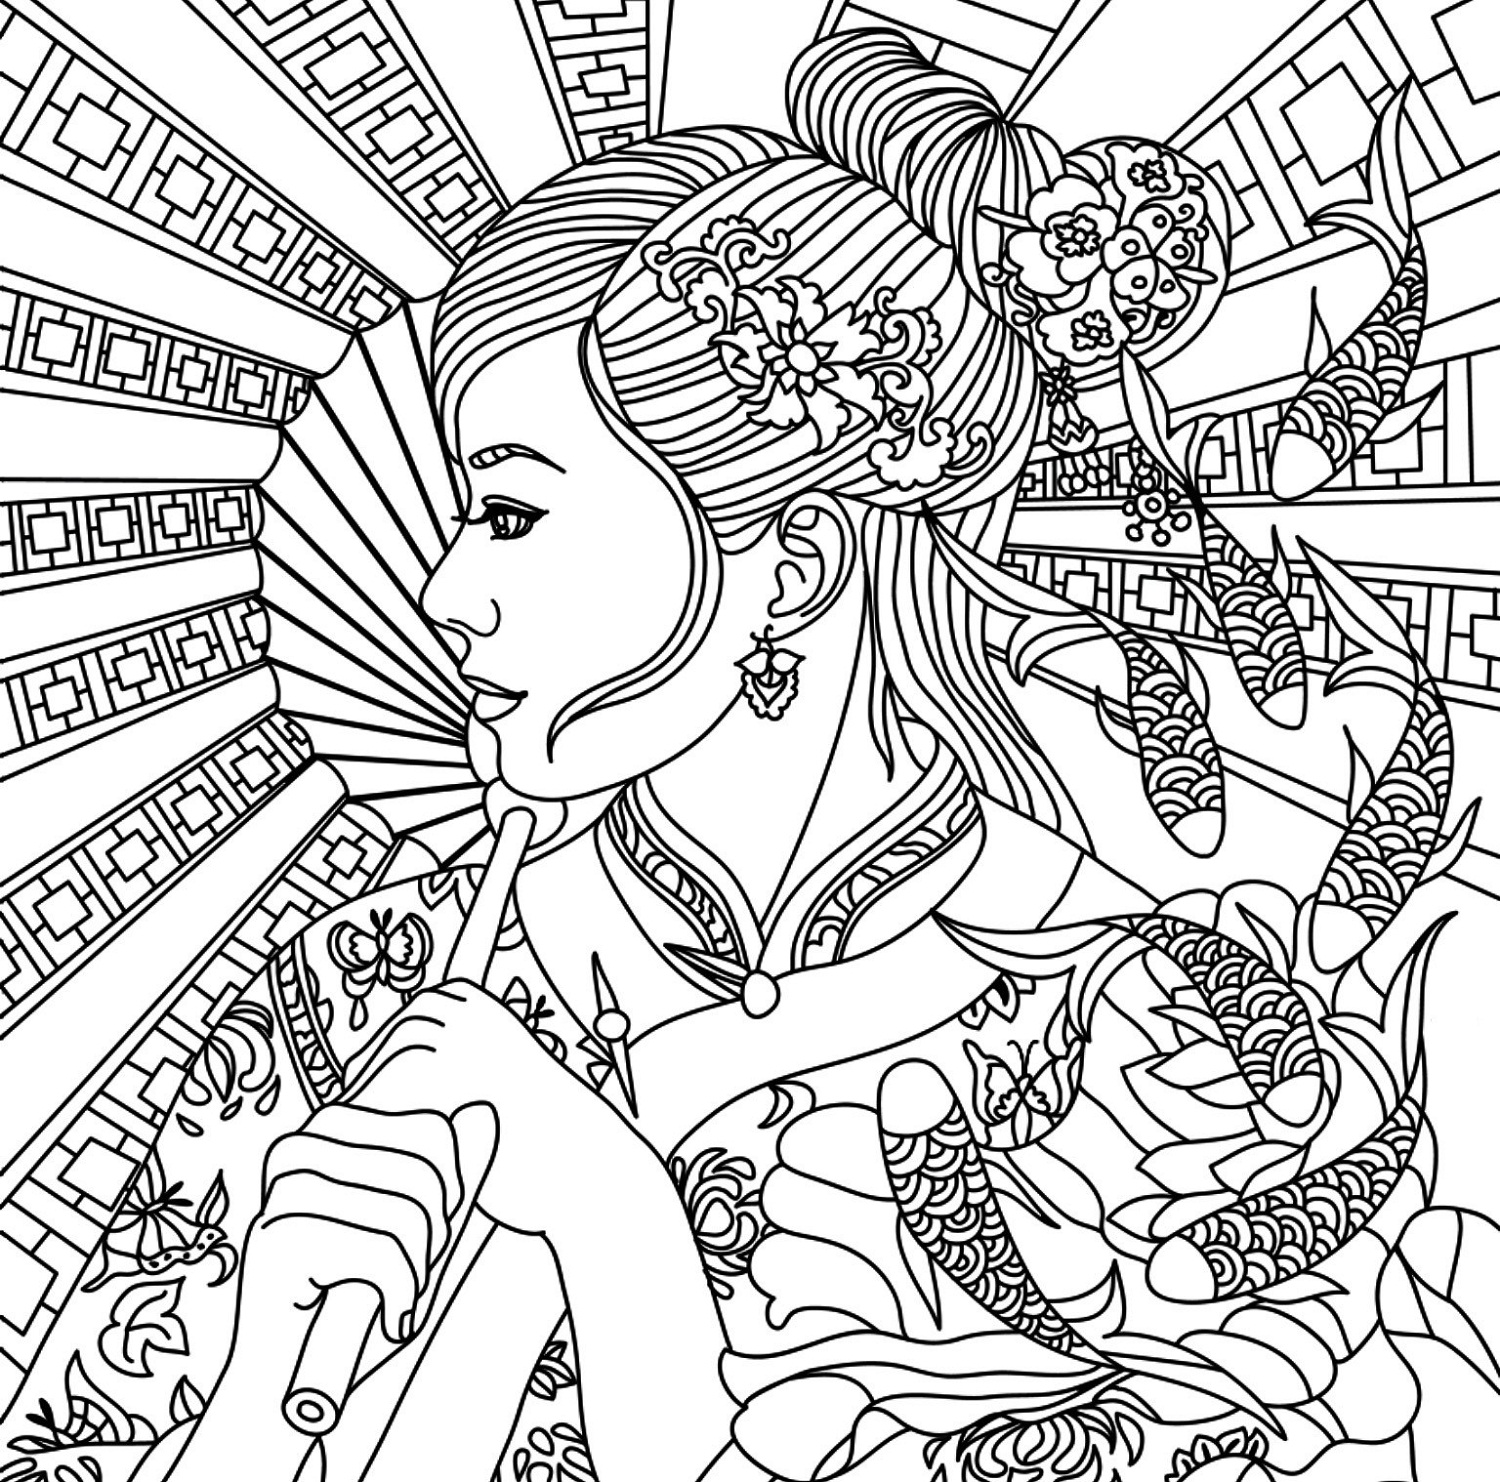 coloring pages tumblr free coloring pages on tumblr coloring tumblr pages